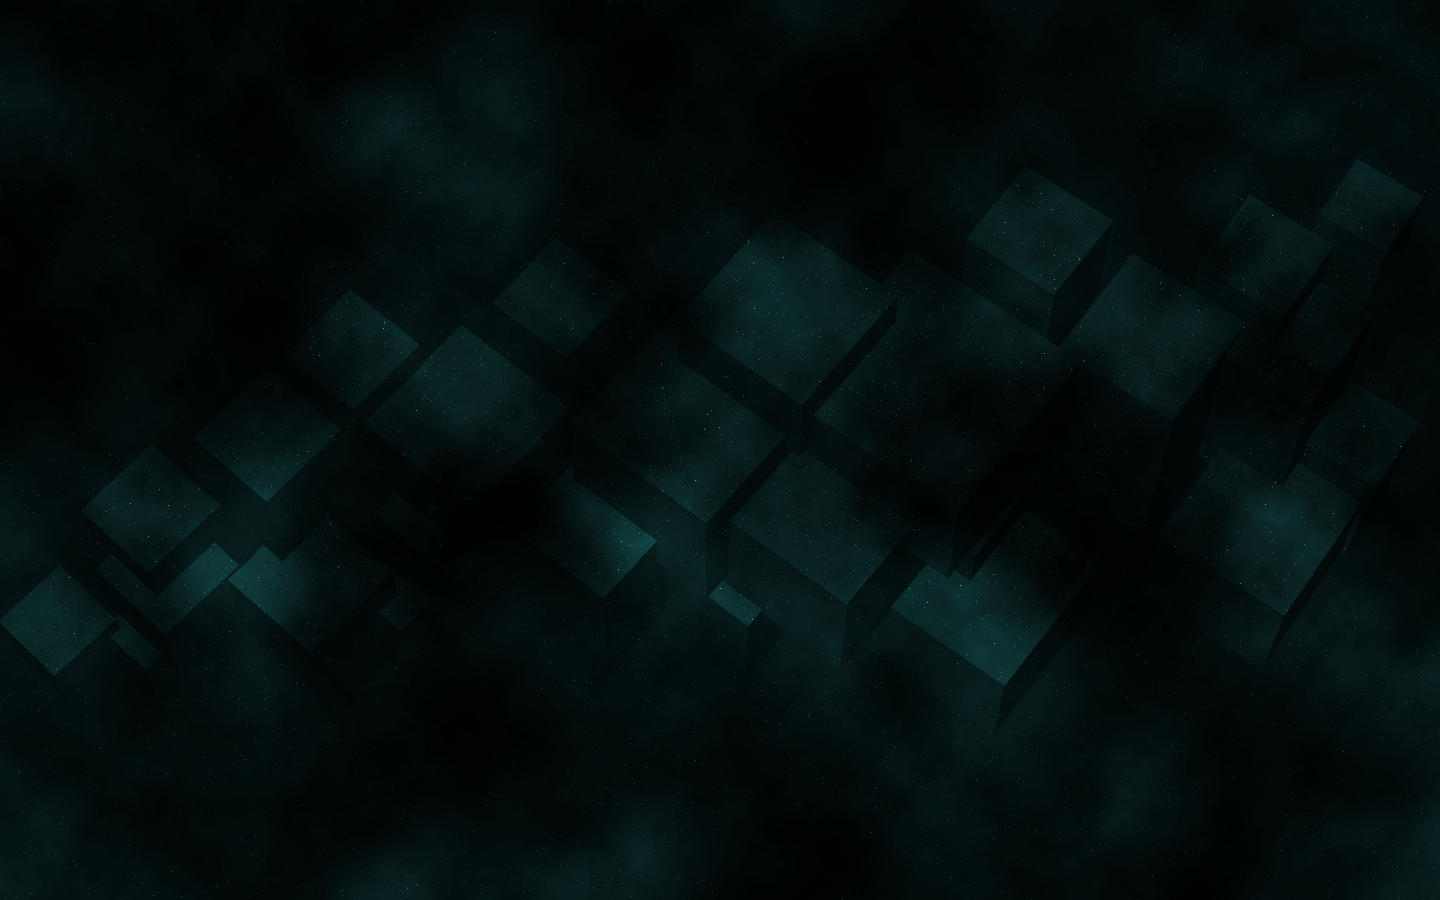 Free Download Abstract Dark Wallpaper 1440x900 For Your